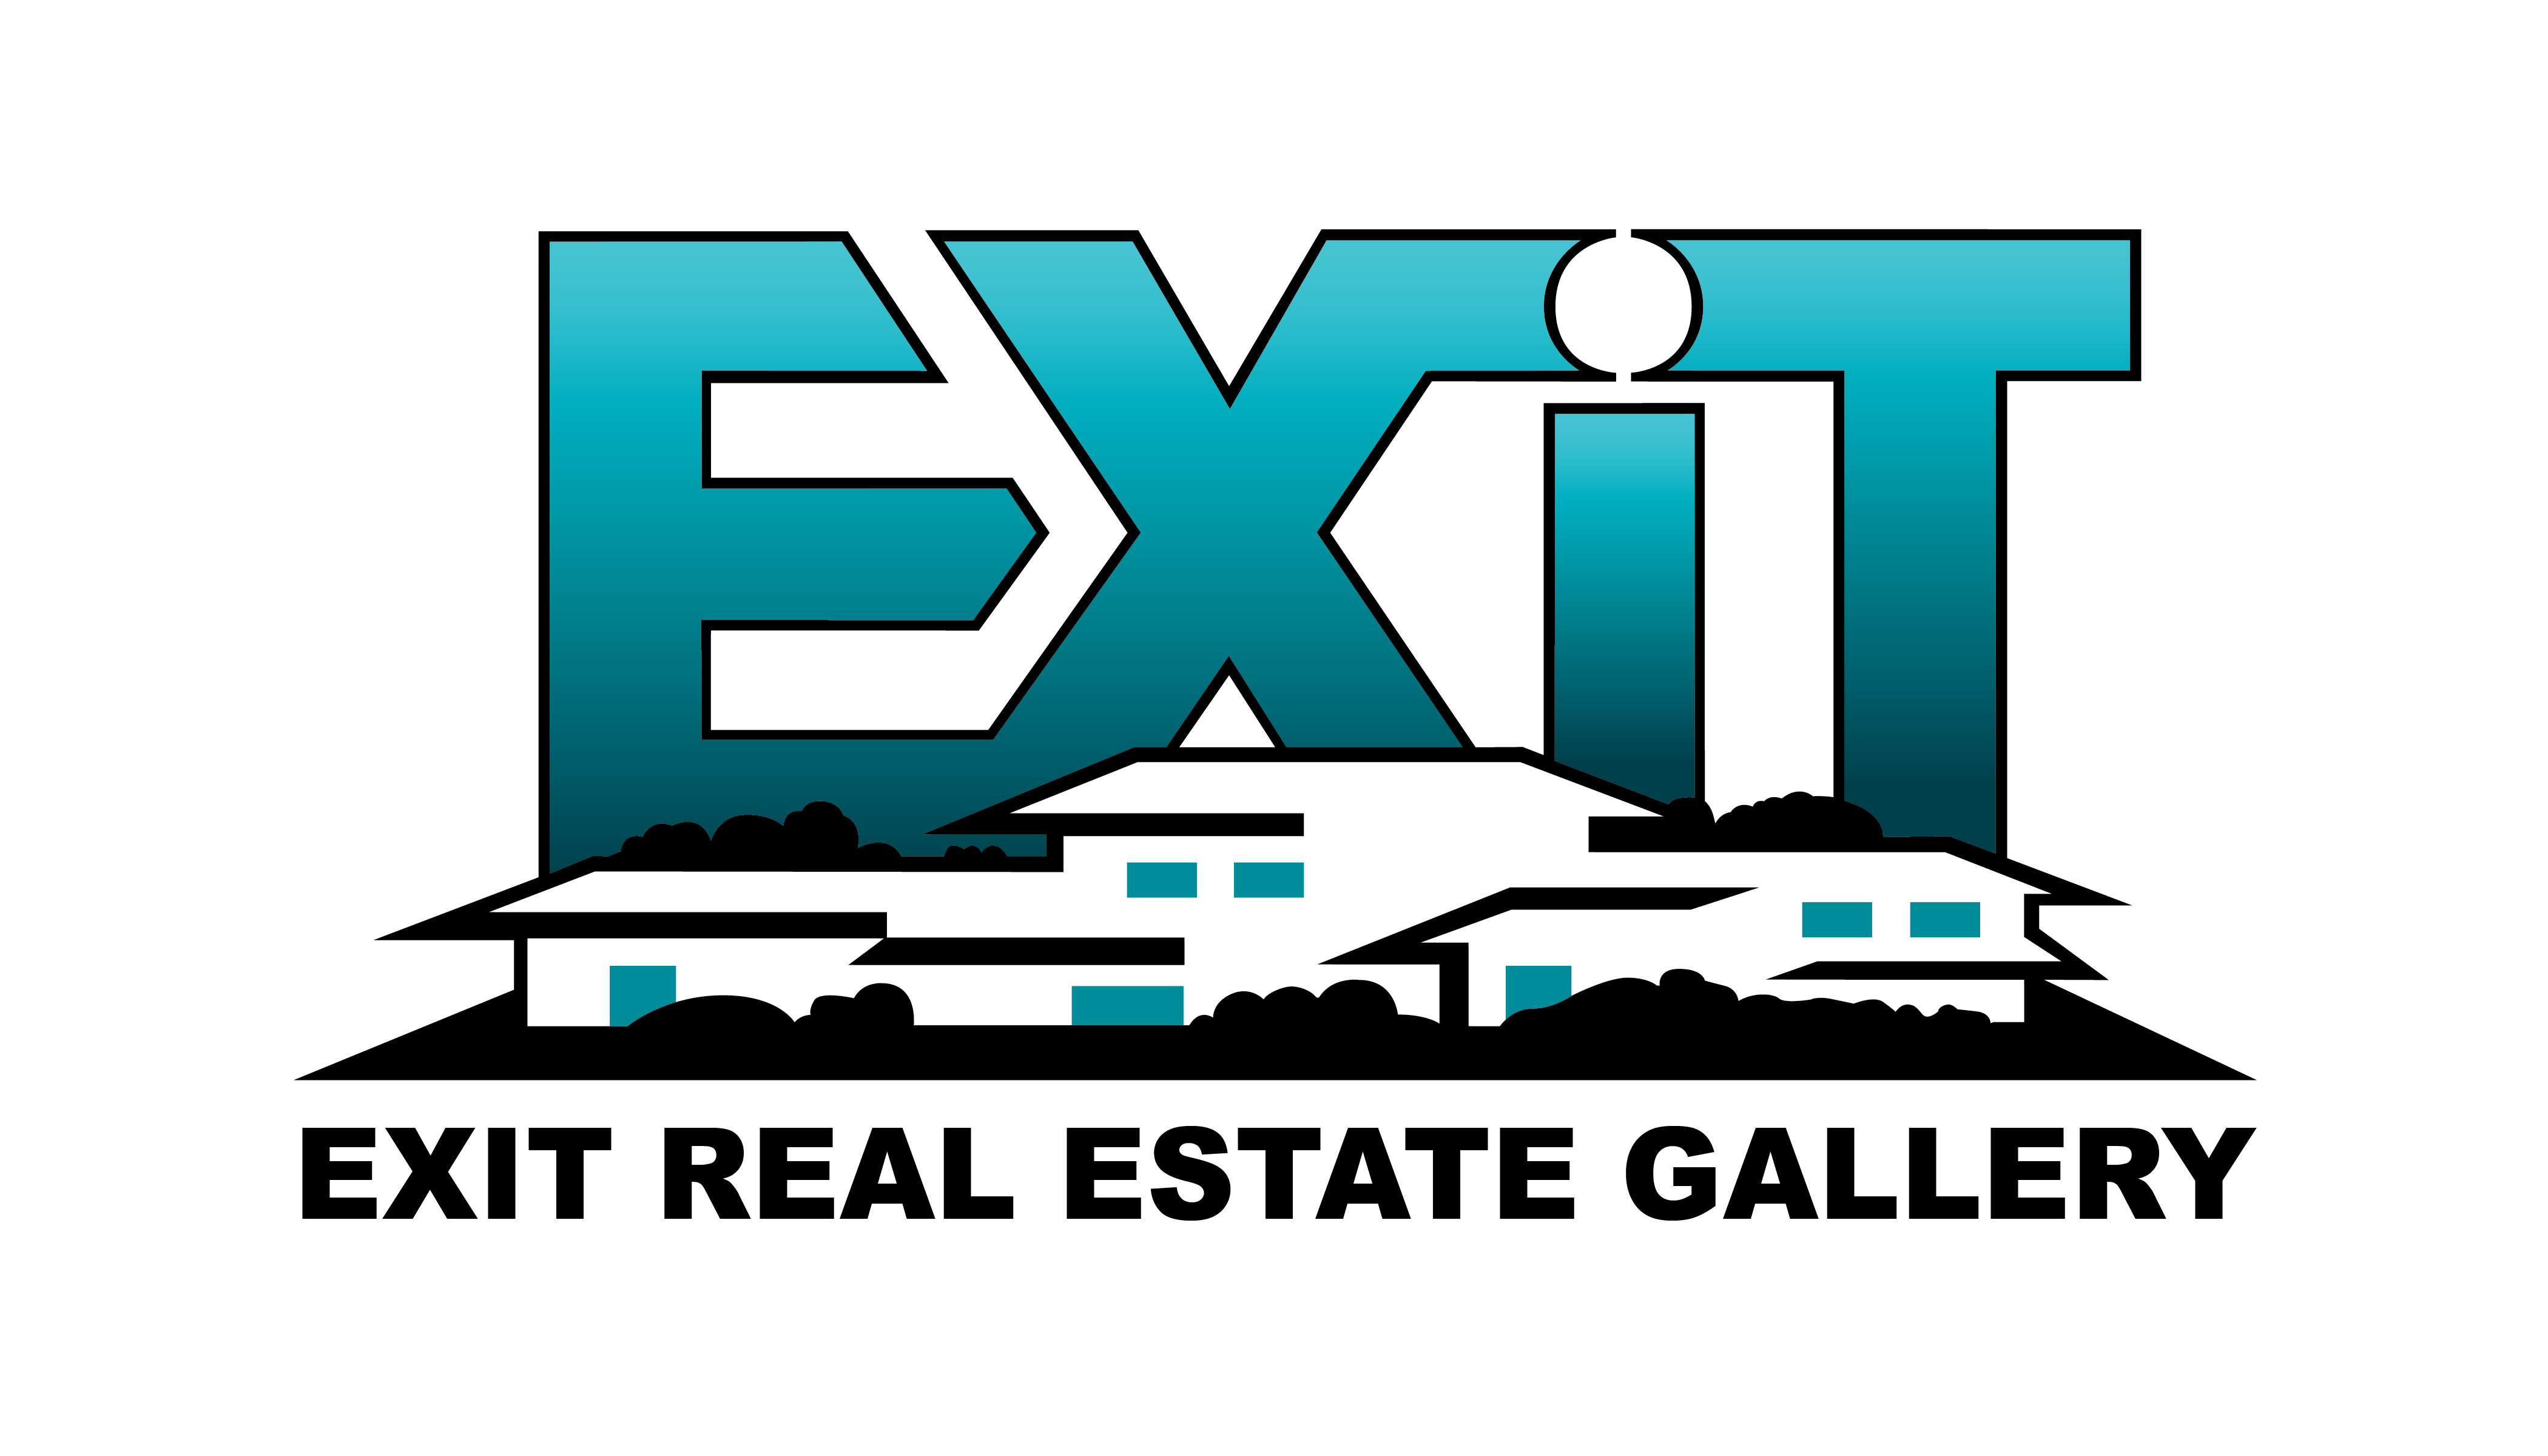 EXIT_REG_LOGO_-_GRADIENT_-_BLACK_FOR_WHITE_BACKGROUNDS.png